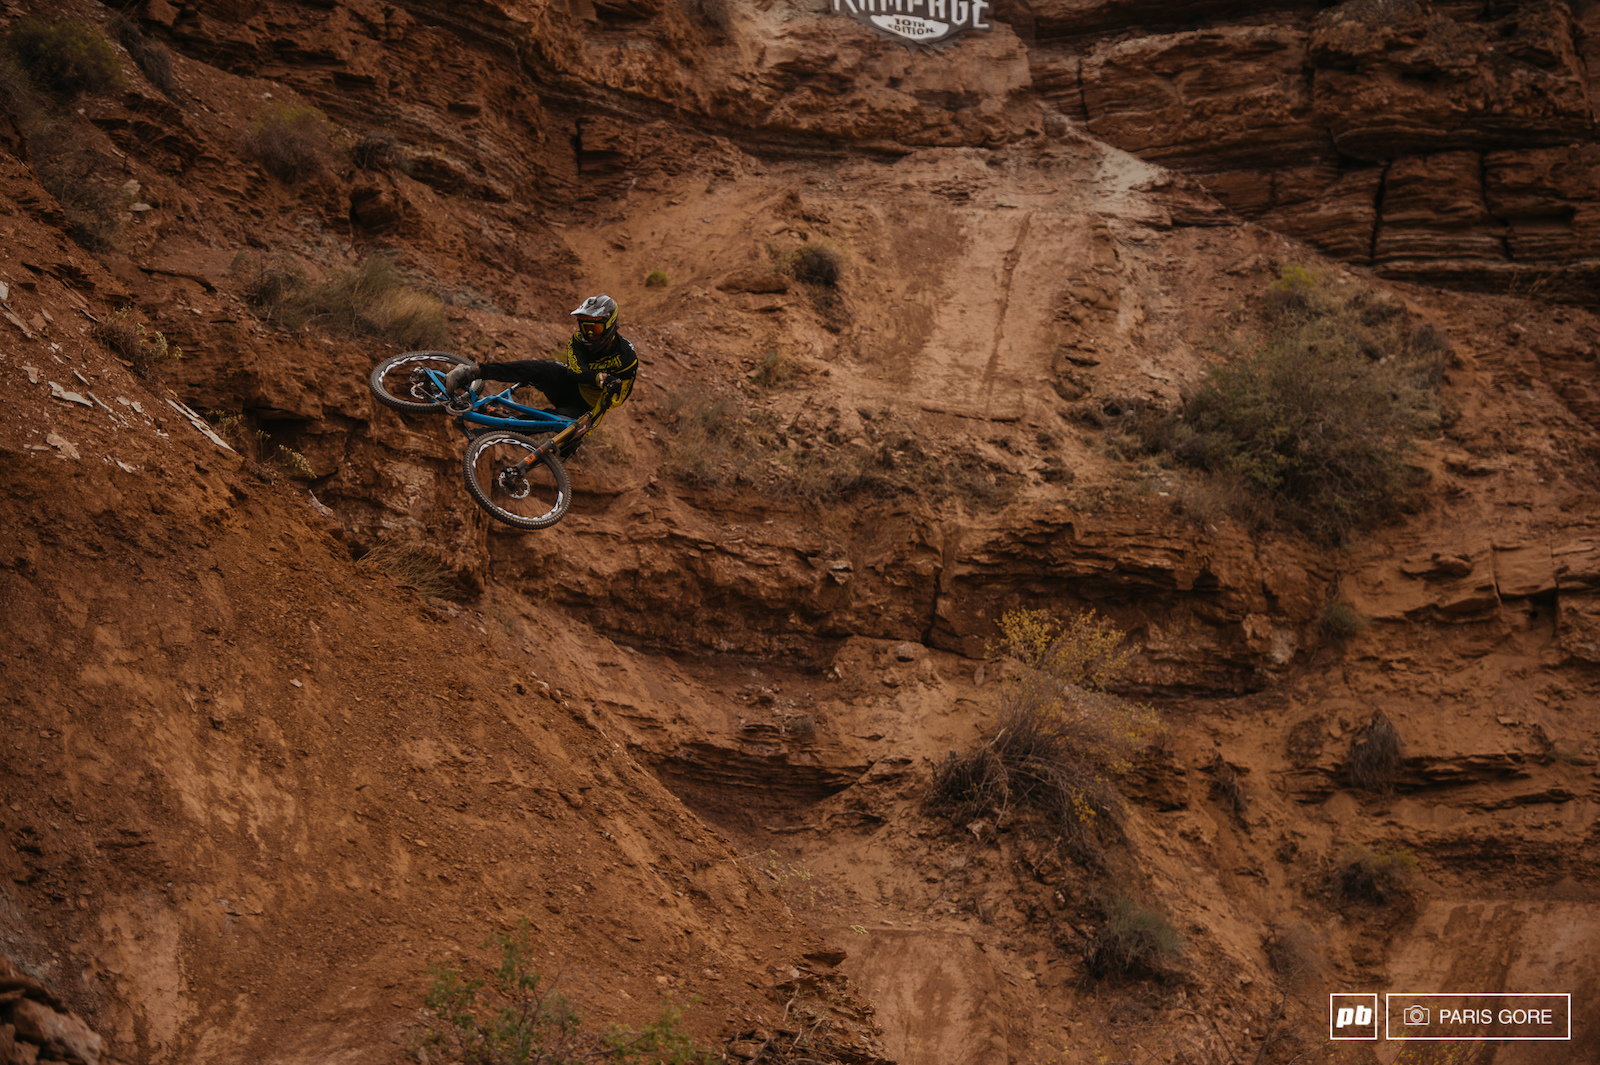 Bas nasty flowing through first time at Rampage and qualified 11th 11 riders to make the cusp.